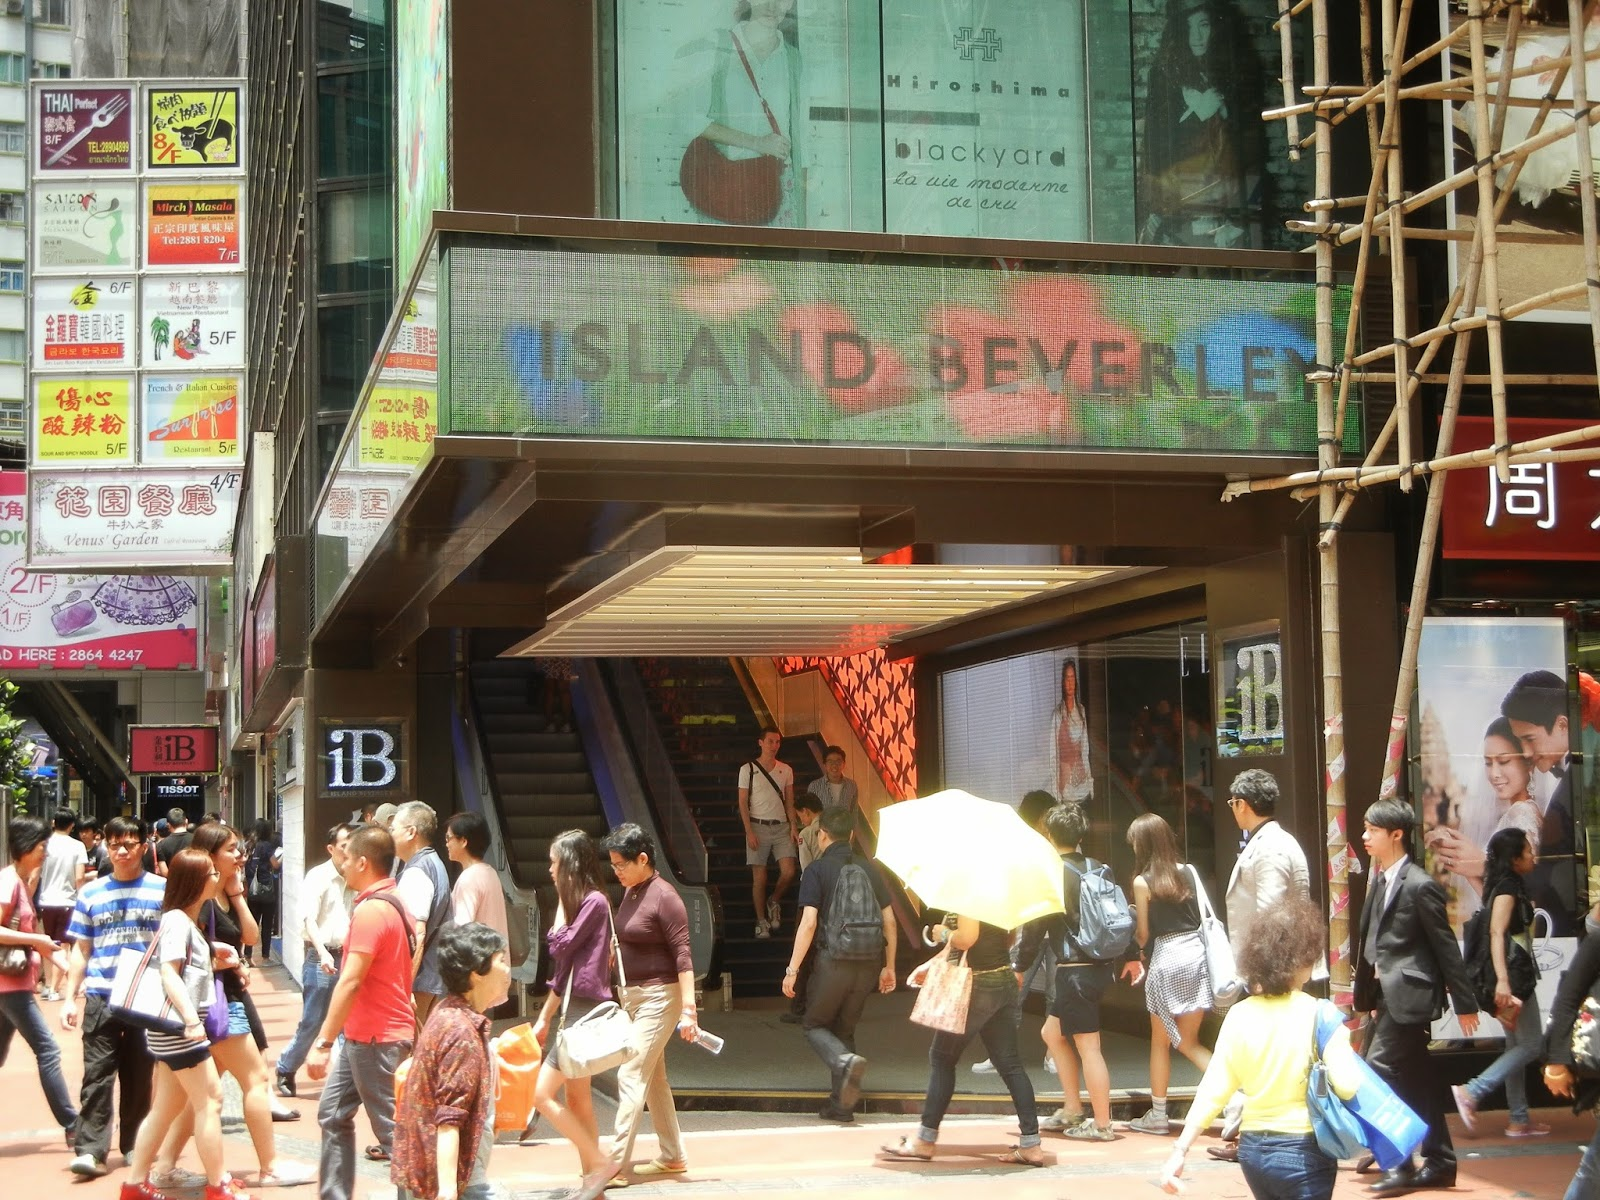 Island Beverly, Hong Kong